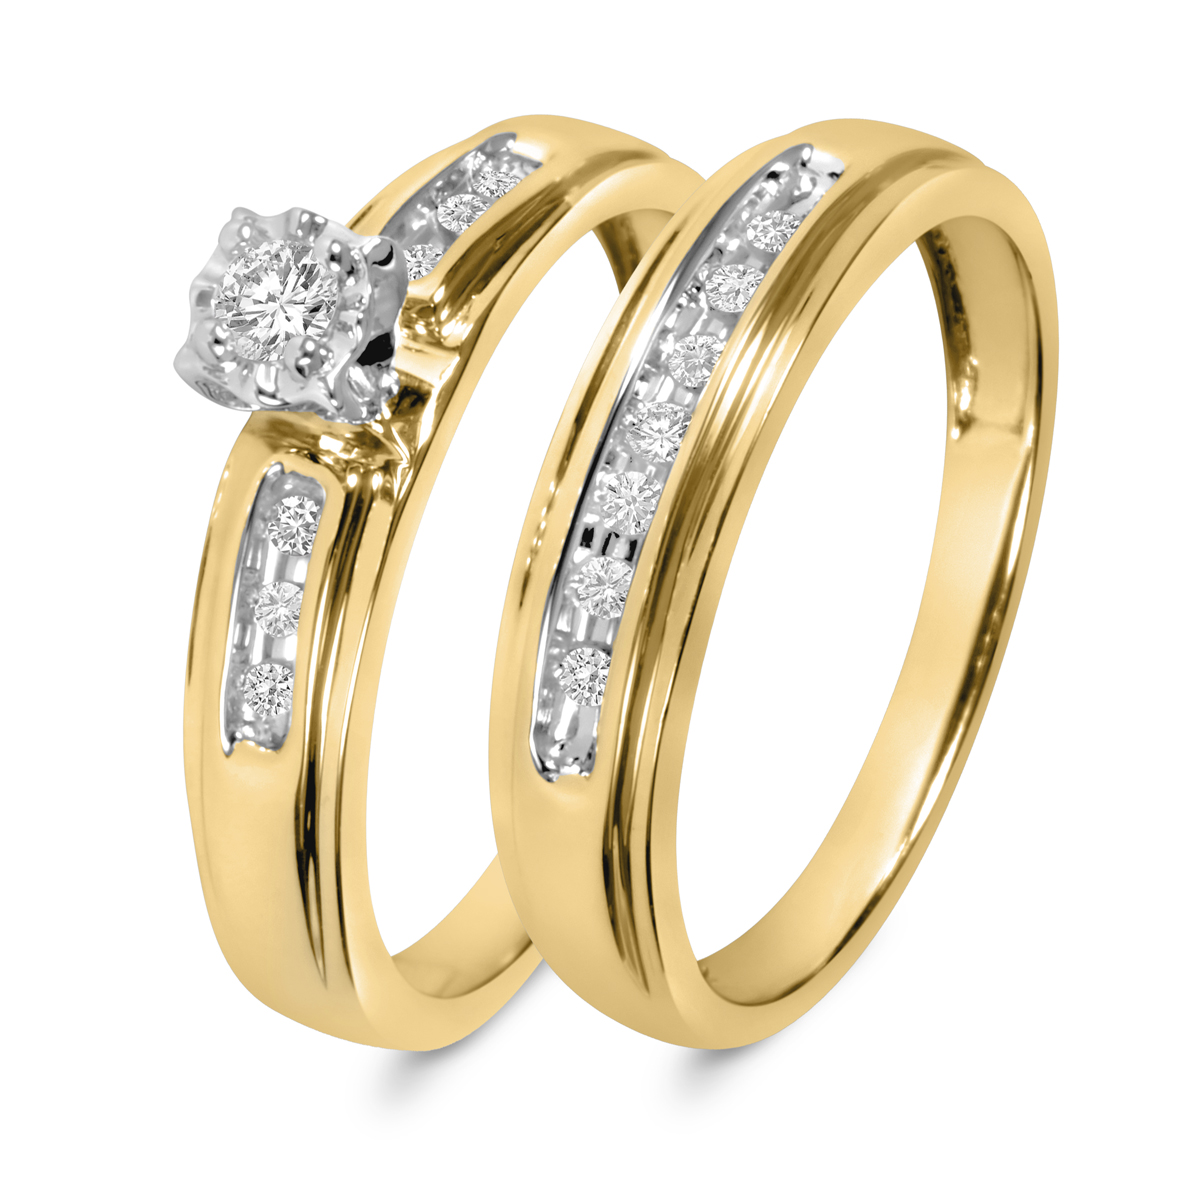 1/5 CT. T.W. Diamond Ladies' Bridal Wedding Ring Set 10K Yellow Gold